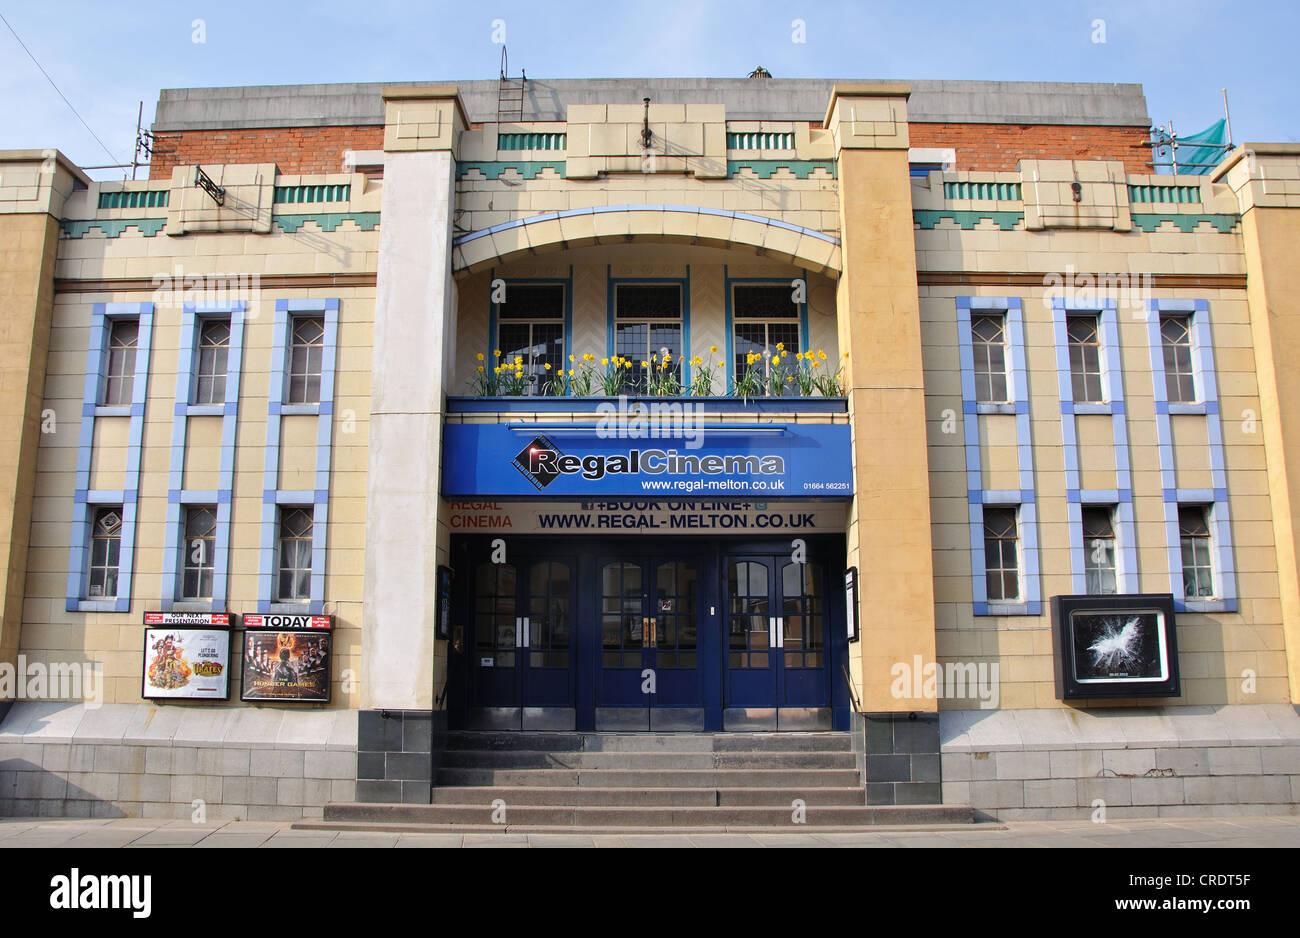 Regal Cinema, King Street, Melton Mowbray, Leicestershire, England, UK - Stock Image